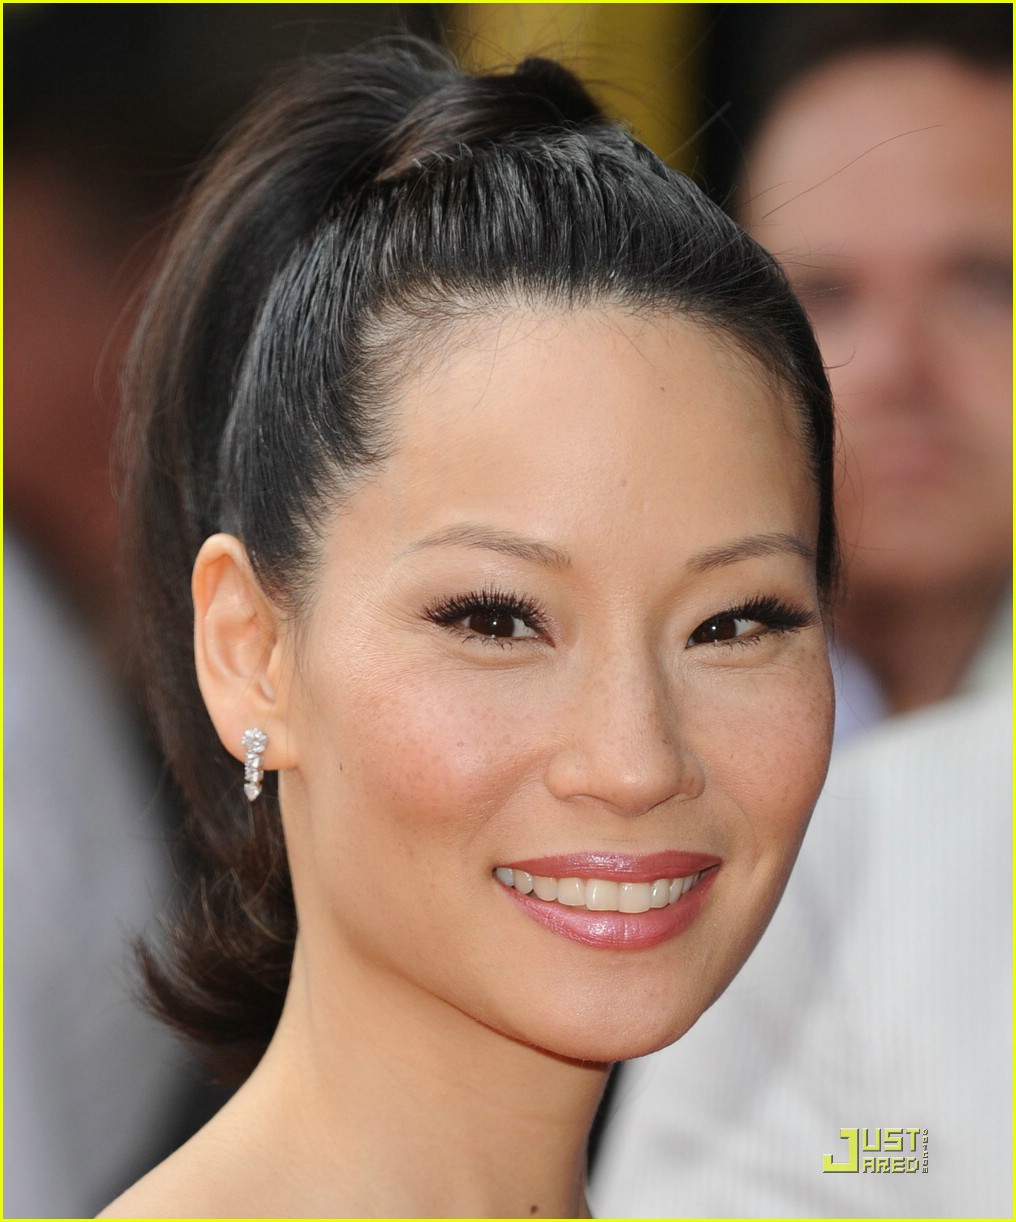 Lucy Liu acupuncture